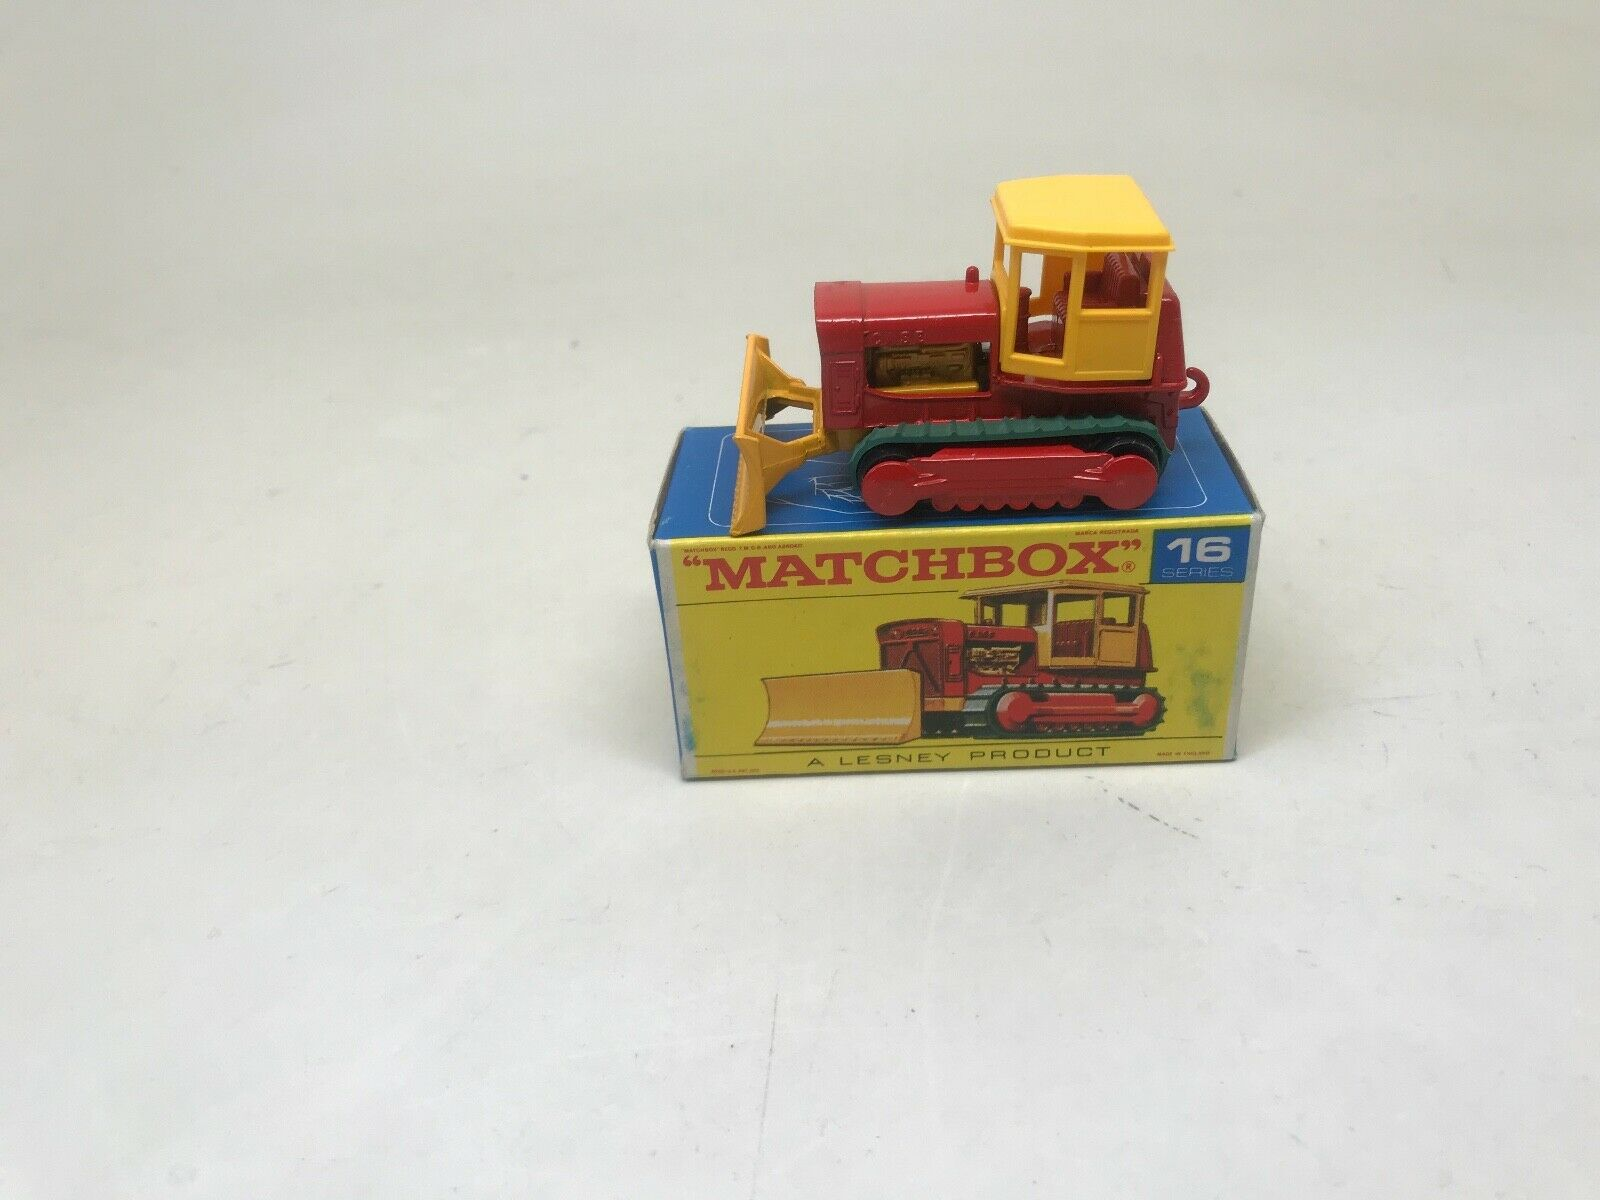 MATCHBOX SERIES-LESNEY PRODUCT- 16 CASE-TRACTOR-WITH BOX-LOOK